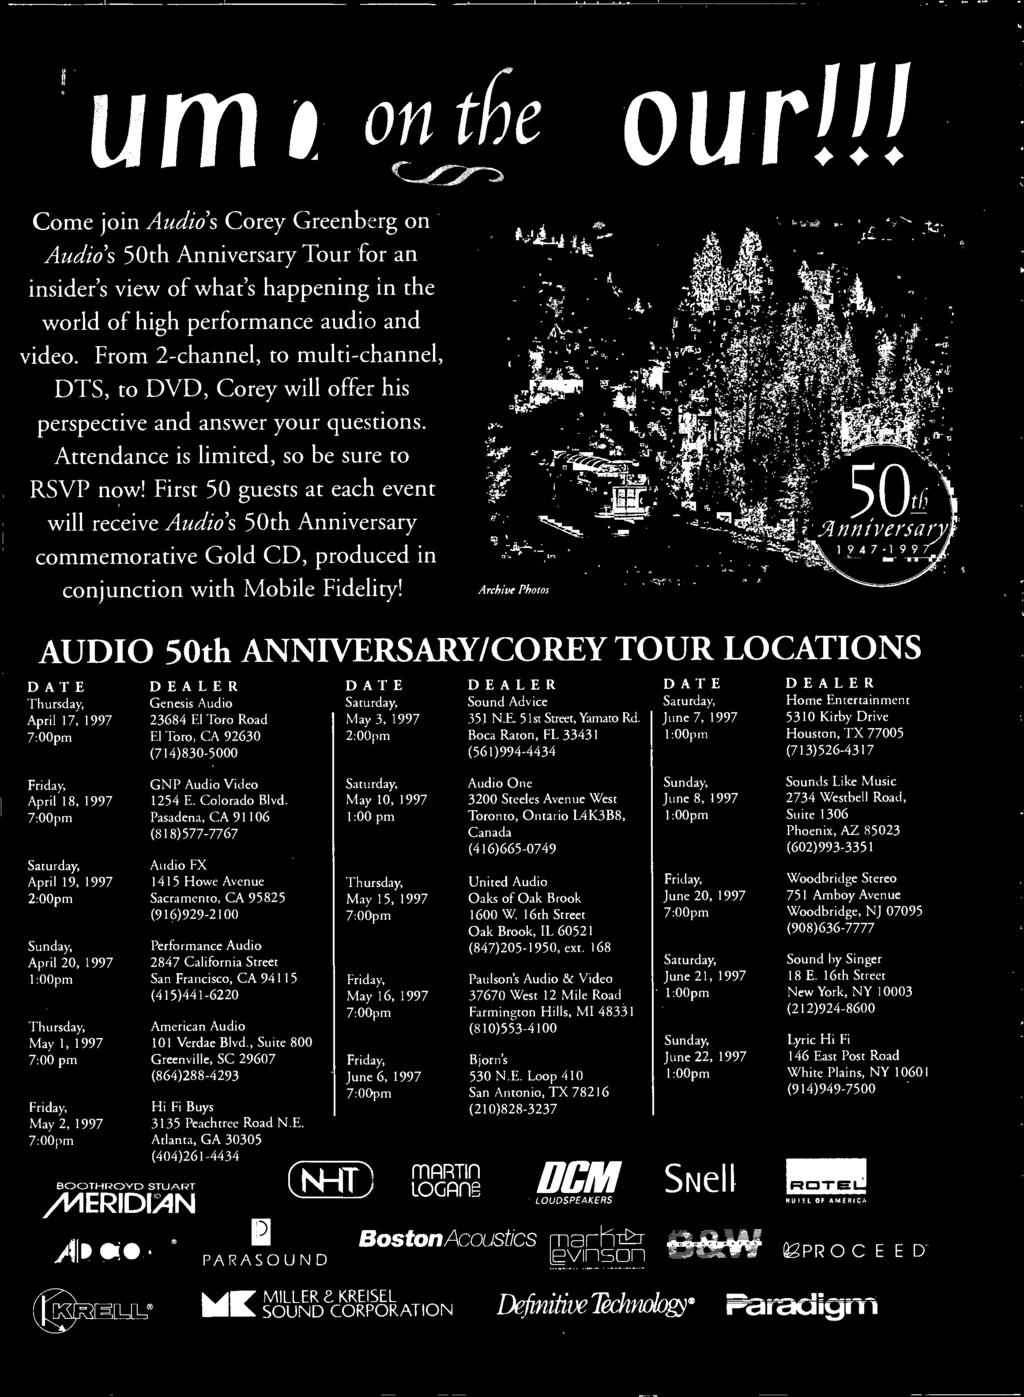 First 50 guests at each event will receive Audio's 50th Anniversary commemorative Gold CD, produced in conjunction with Mobile Fidelity!